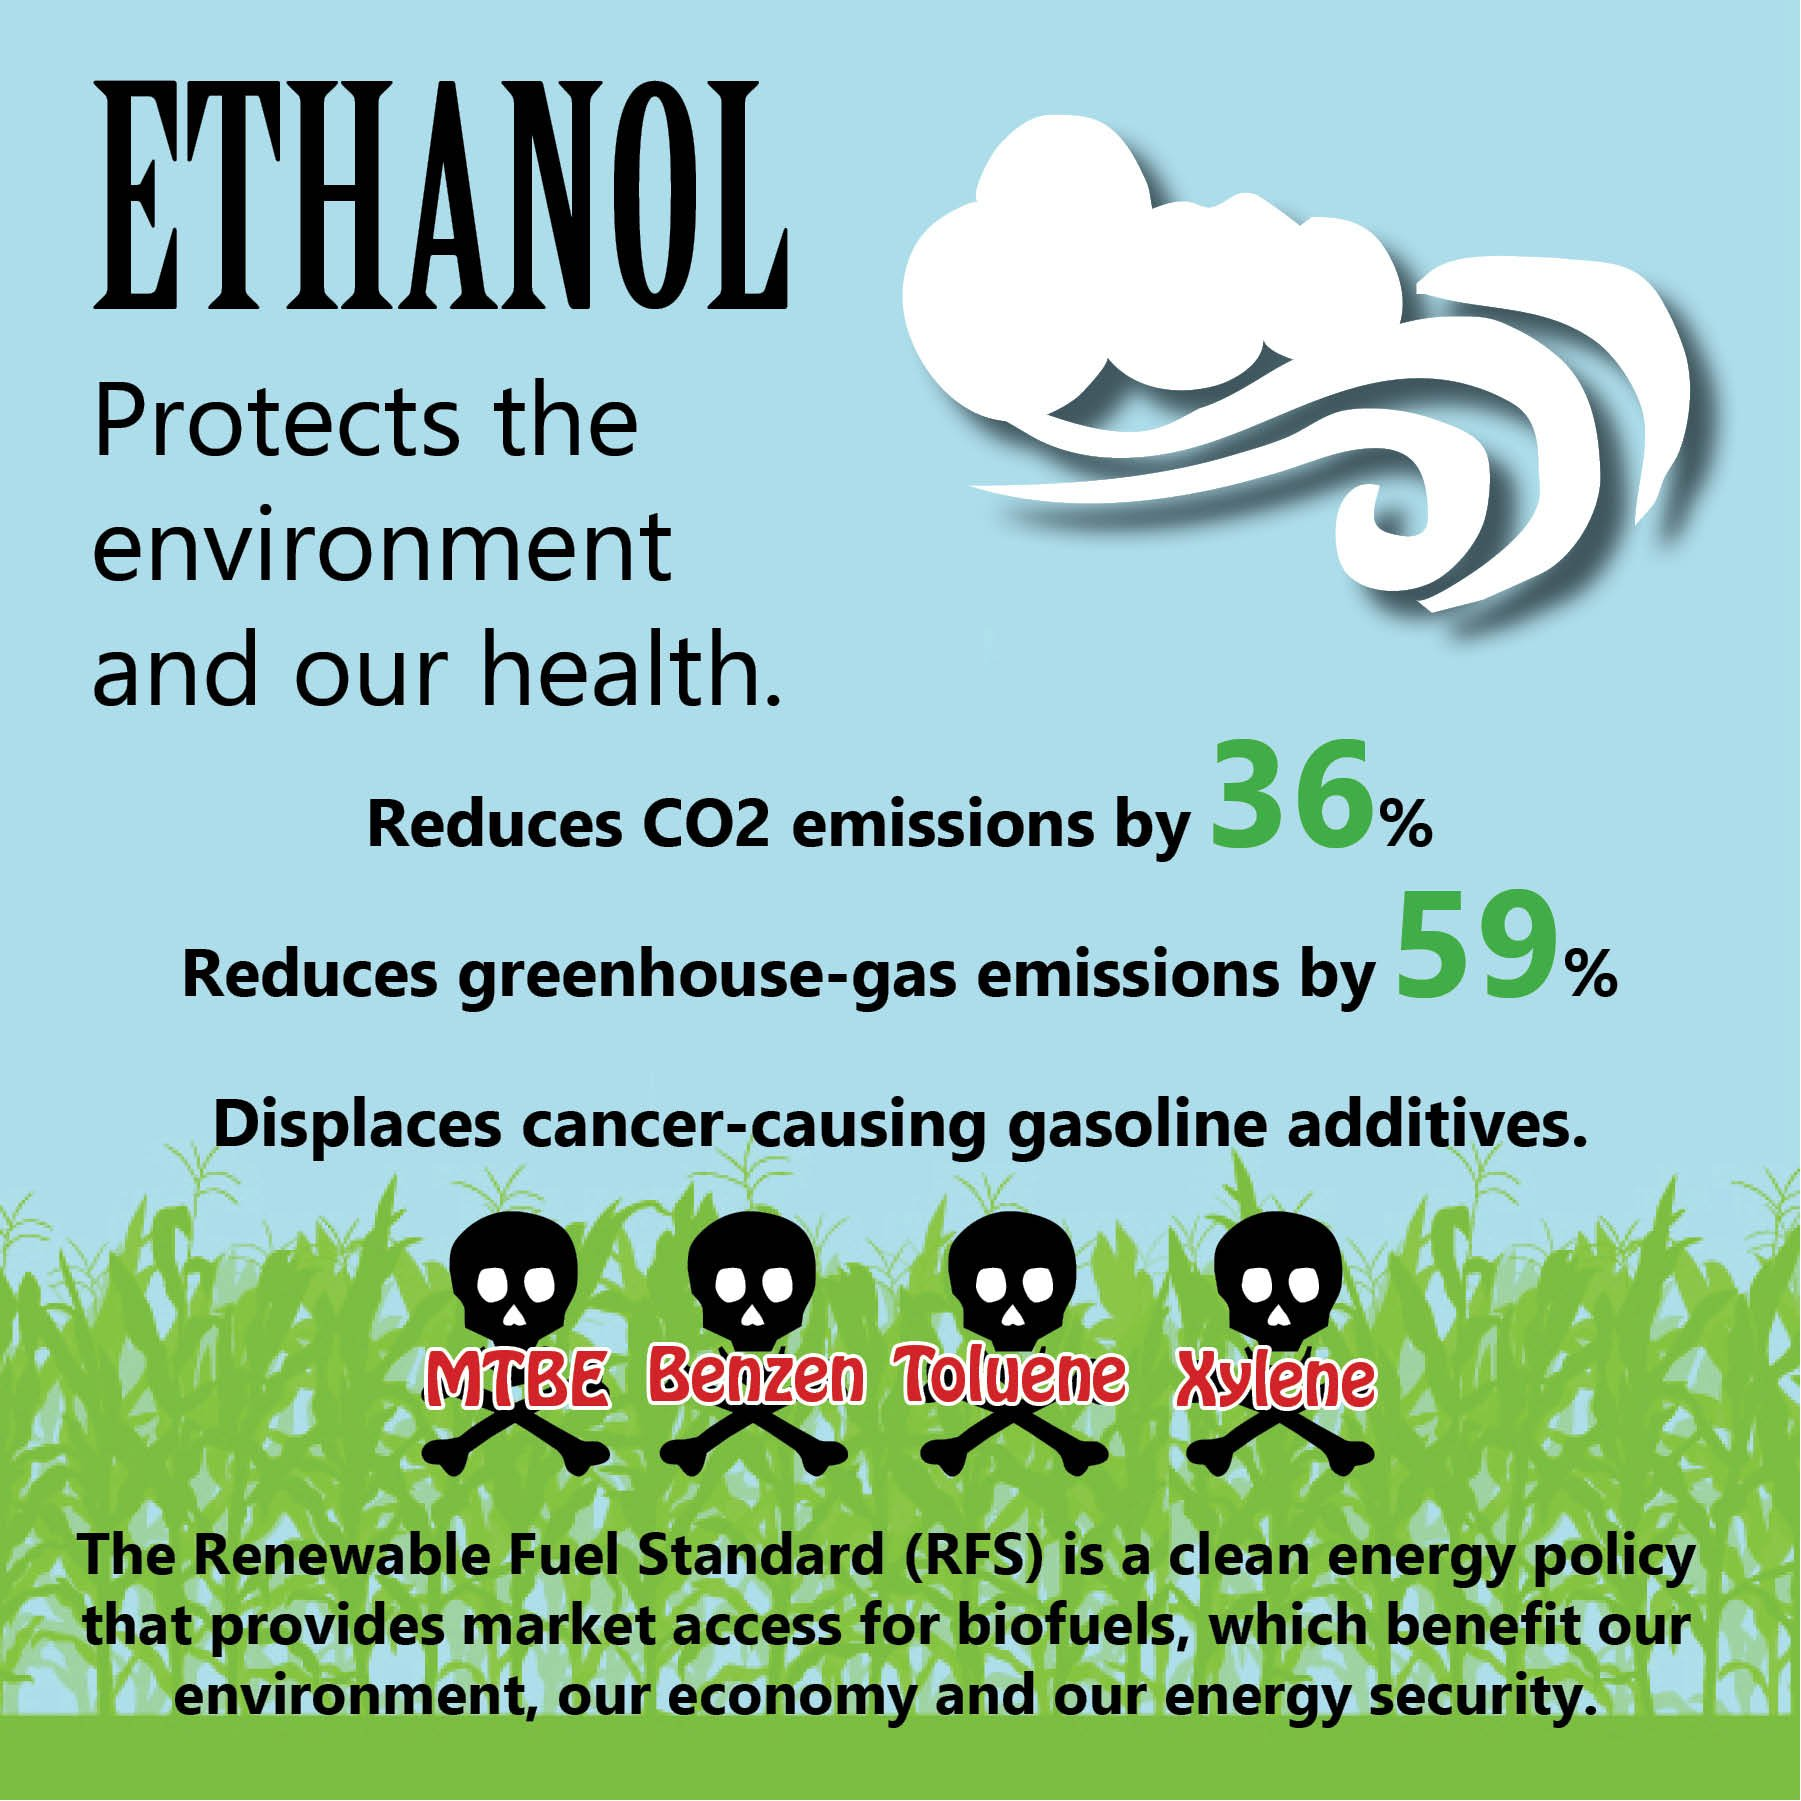 reduced emissions from ethanol in gasoline